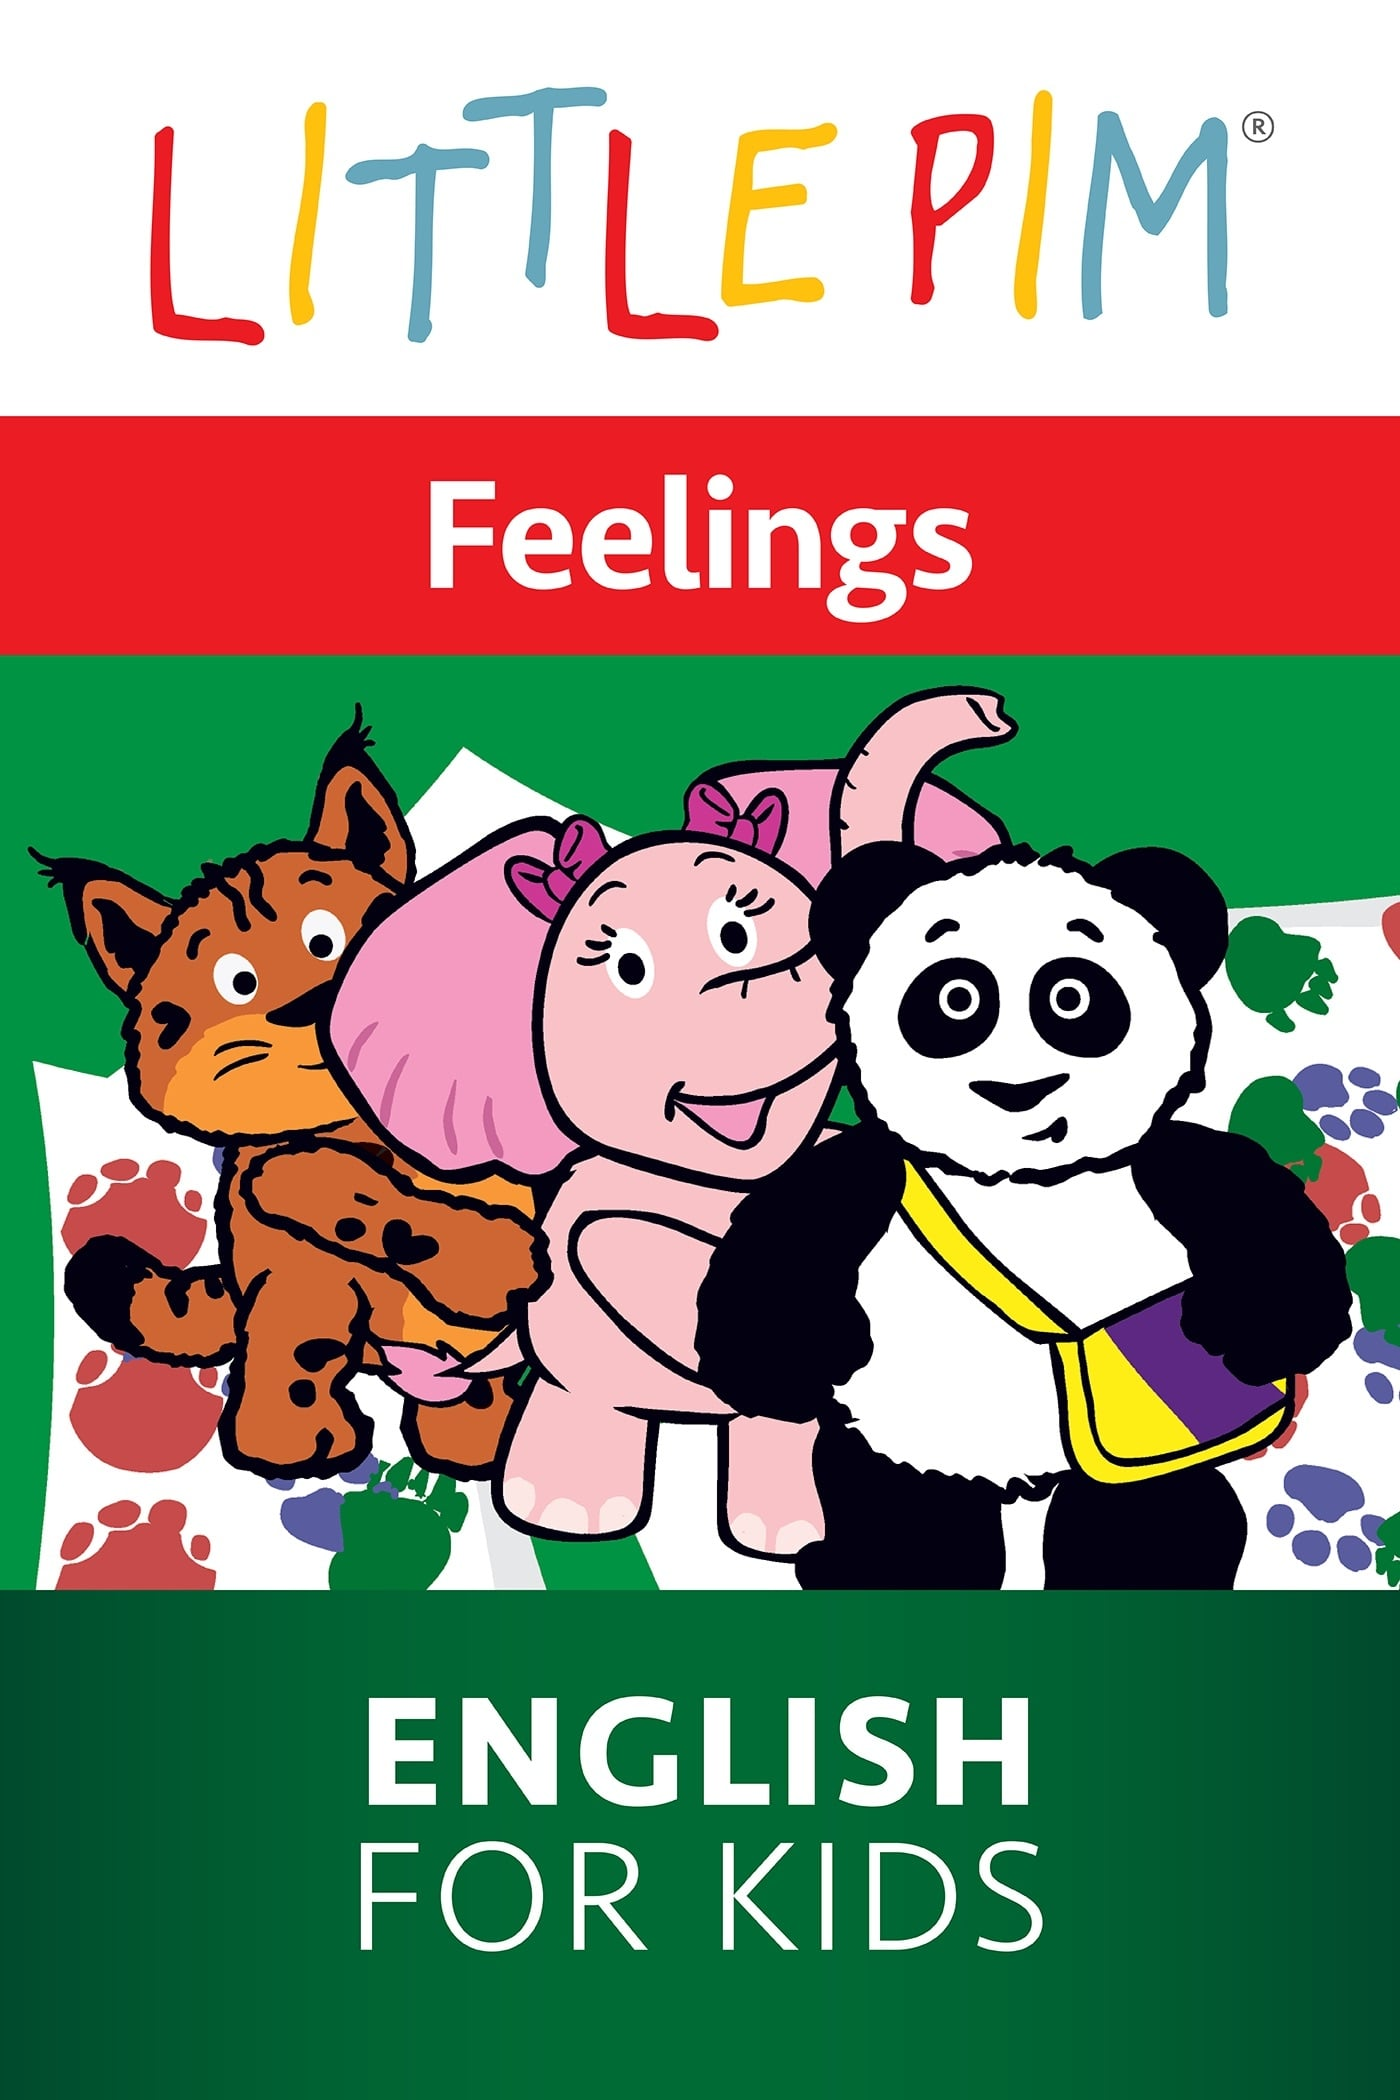 Little Pim: Feelings - English for Kids on FREECABLE TV